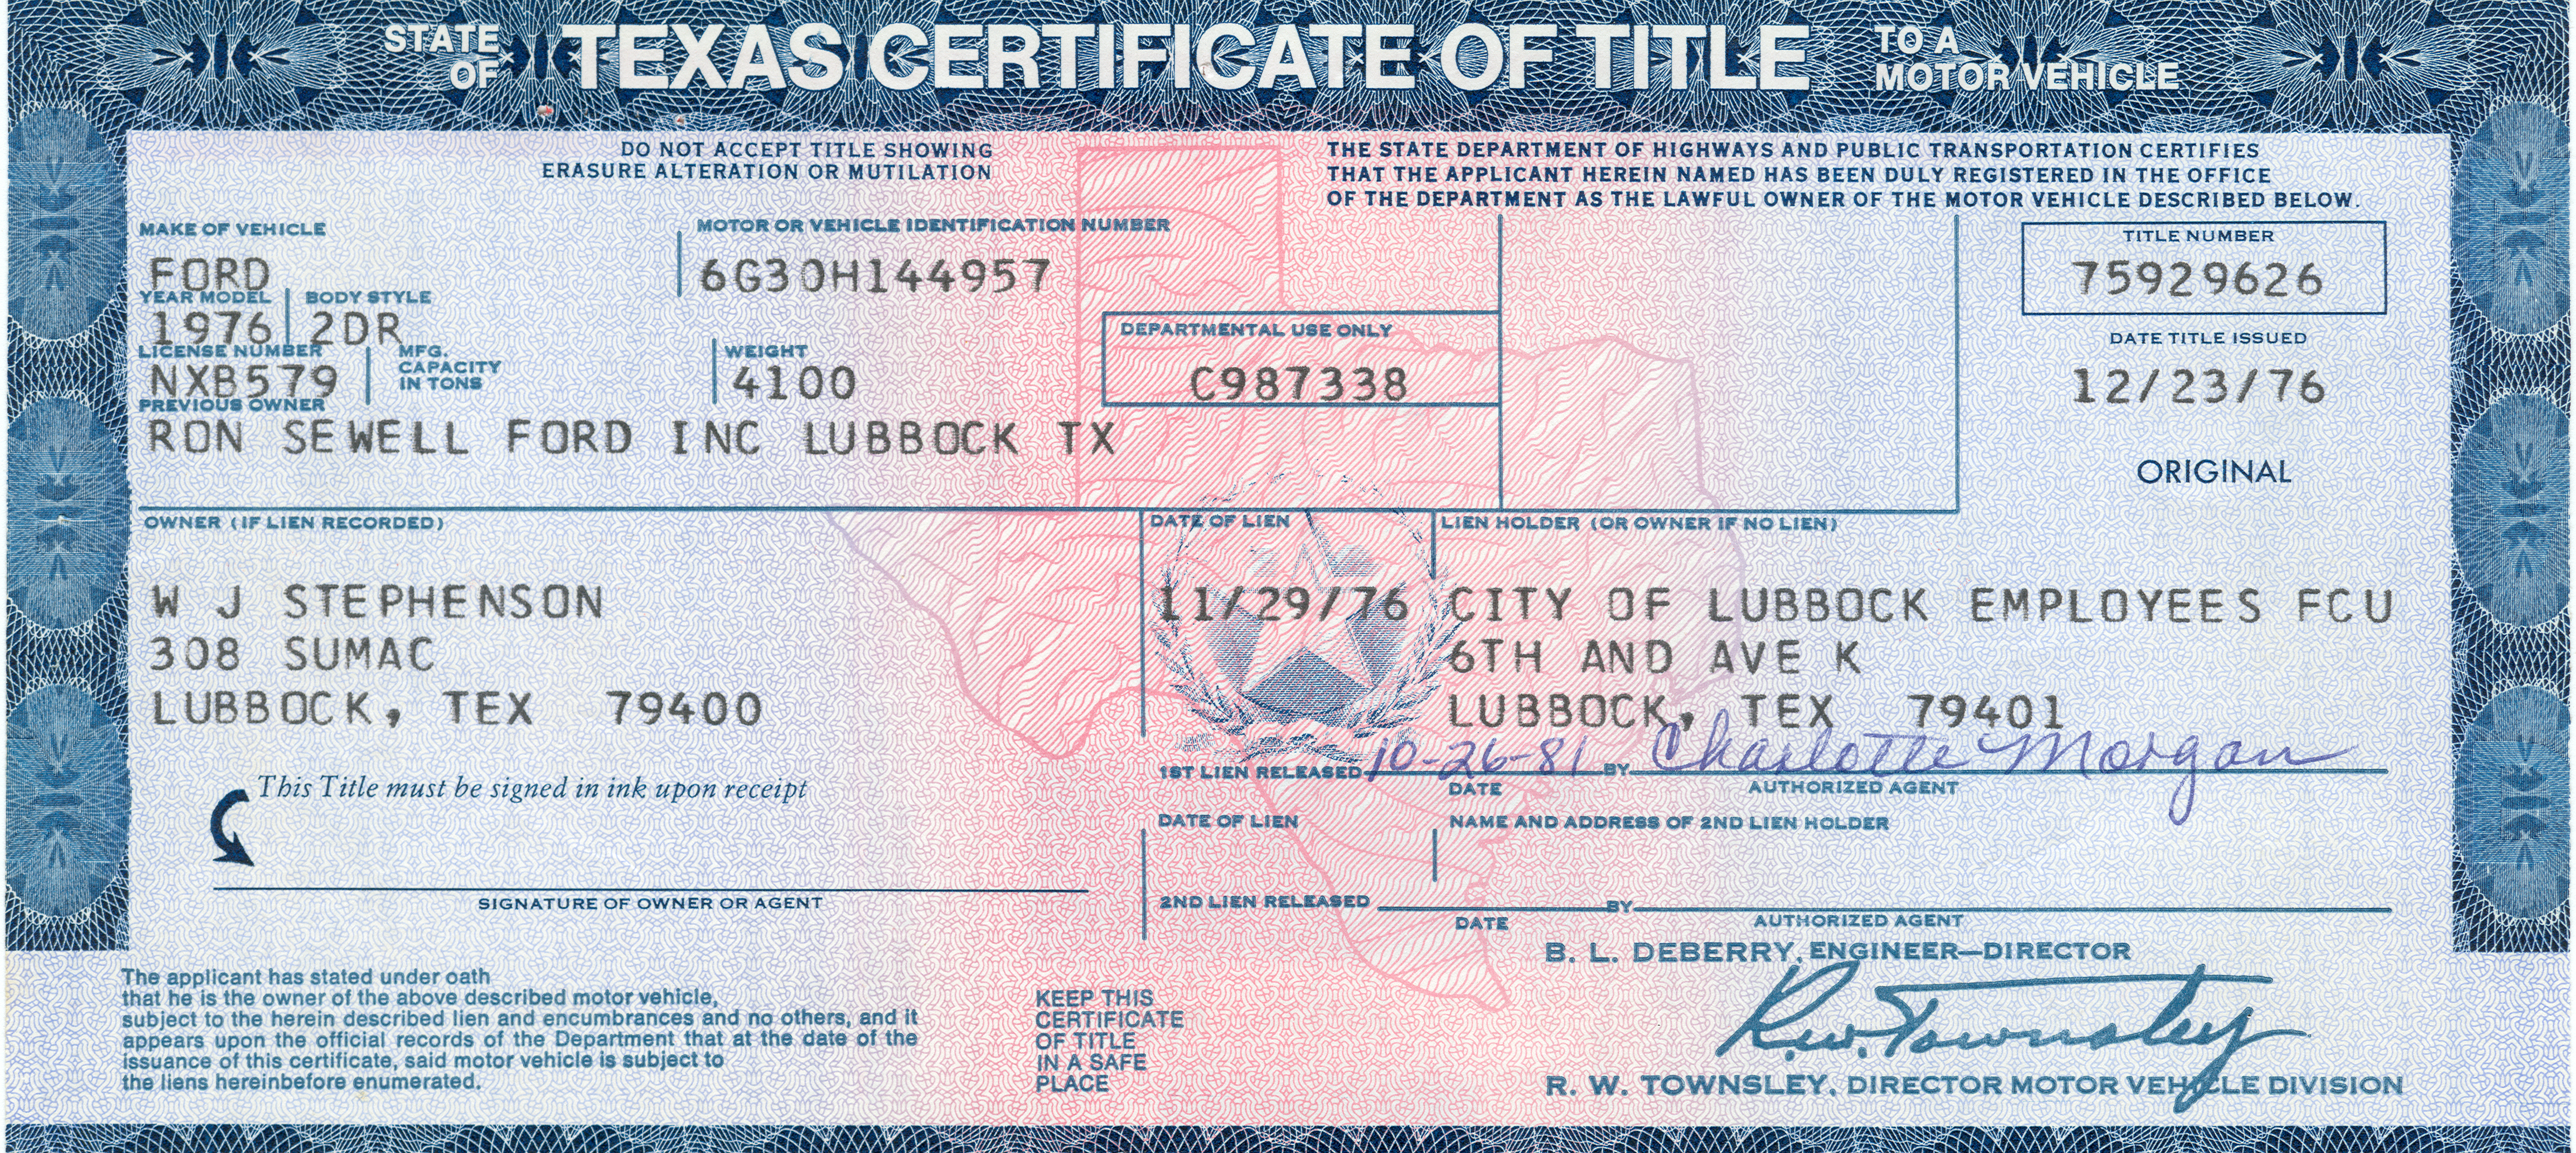 Birth certificate bond best design sertificate 2017 birth certificate and bond the dark truth 1betcityfo Image collections